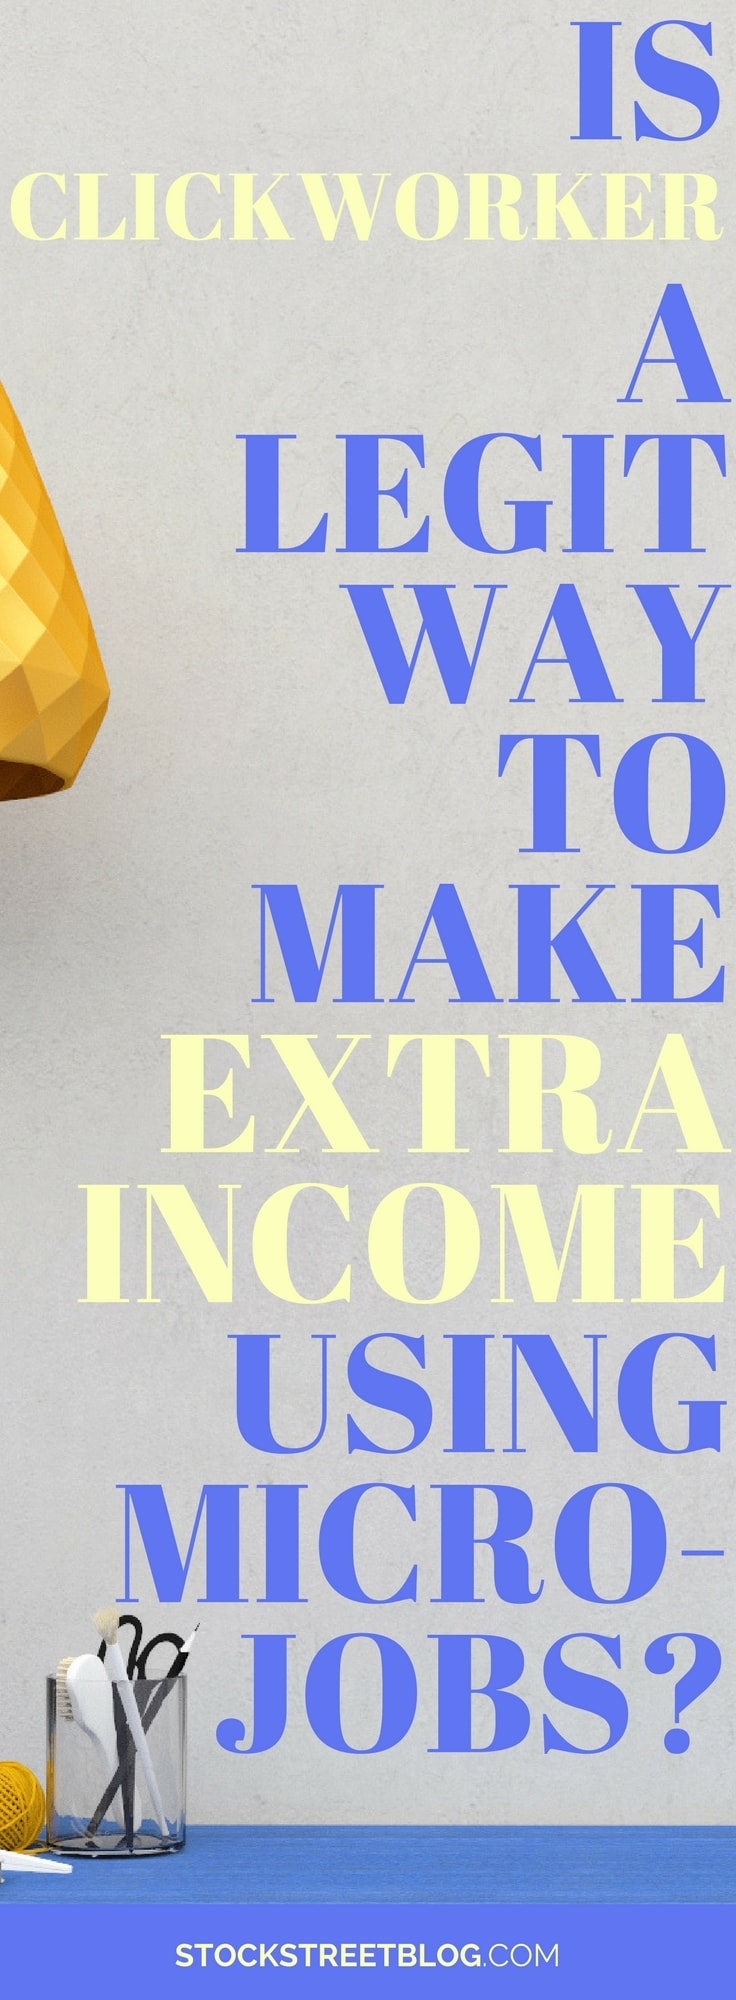 Micro jobs are small tasks that can't be done by computers. For this reason, platforms such as, Clickworker, hire people to do many small tasks for a little cash. Do enough small tasks and you can make a decent amount of extra income! Clickworker may be a great side hustle if for you. #sidehustle #extraincome #money #sidegig #personalfinance #saving #WAHM #SAHM #mom